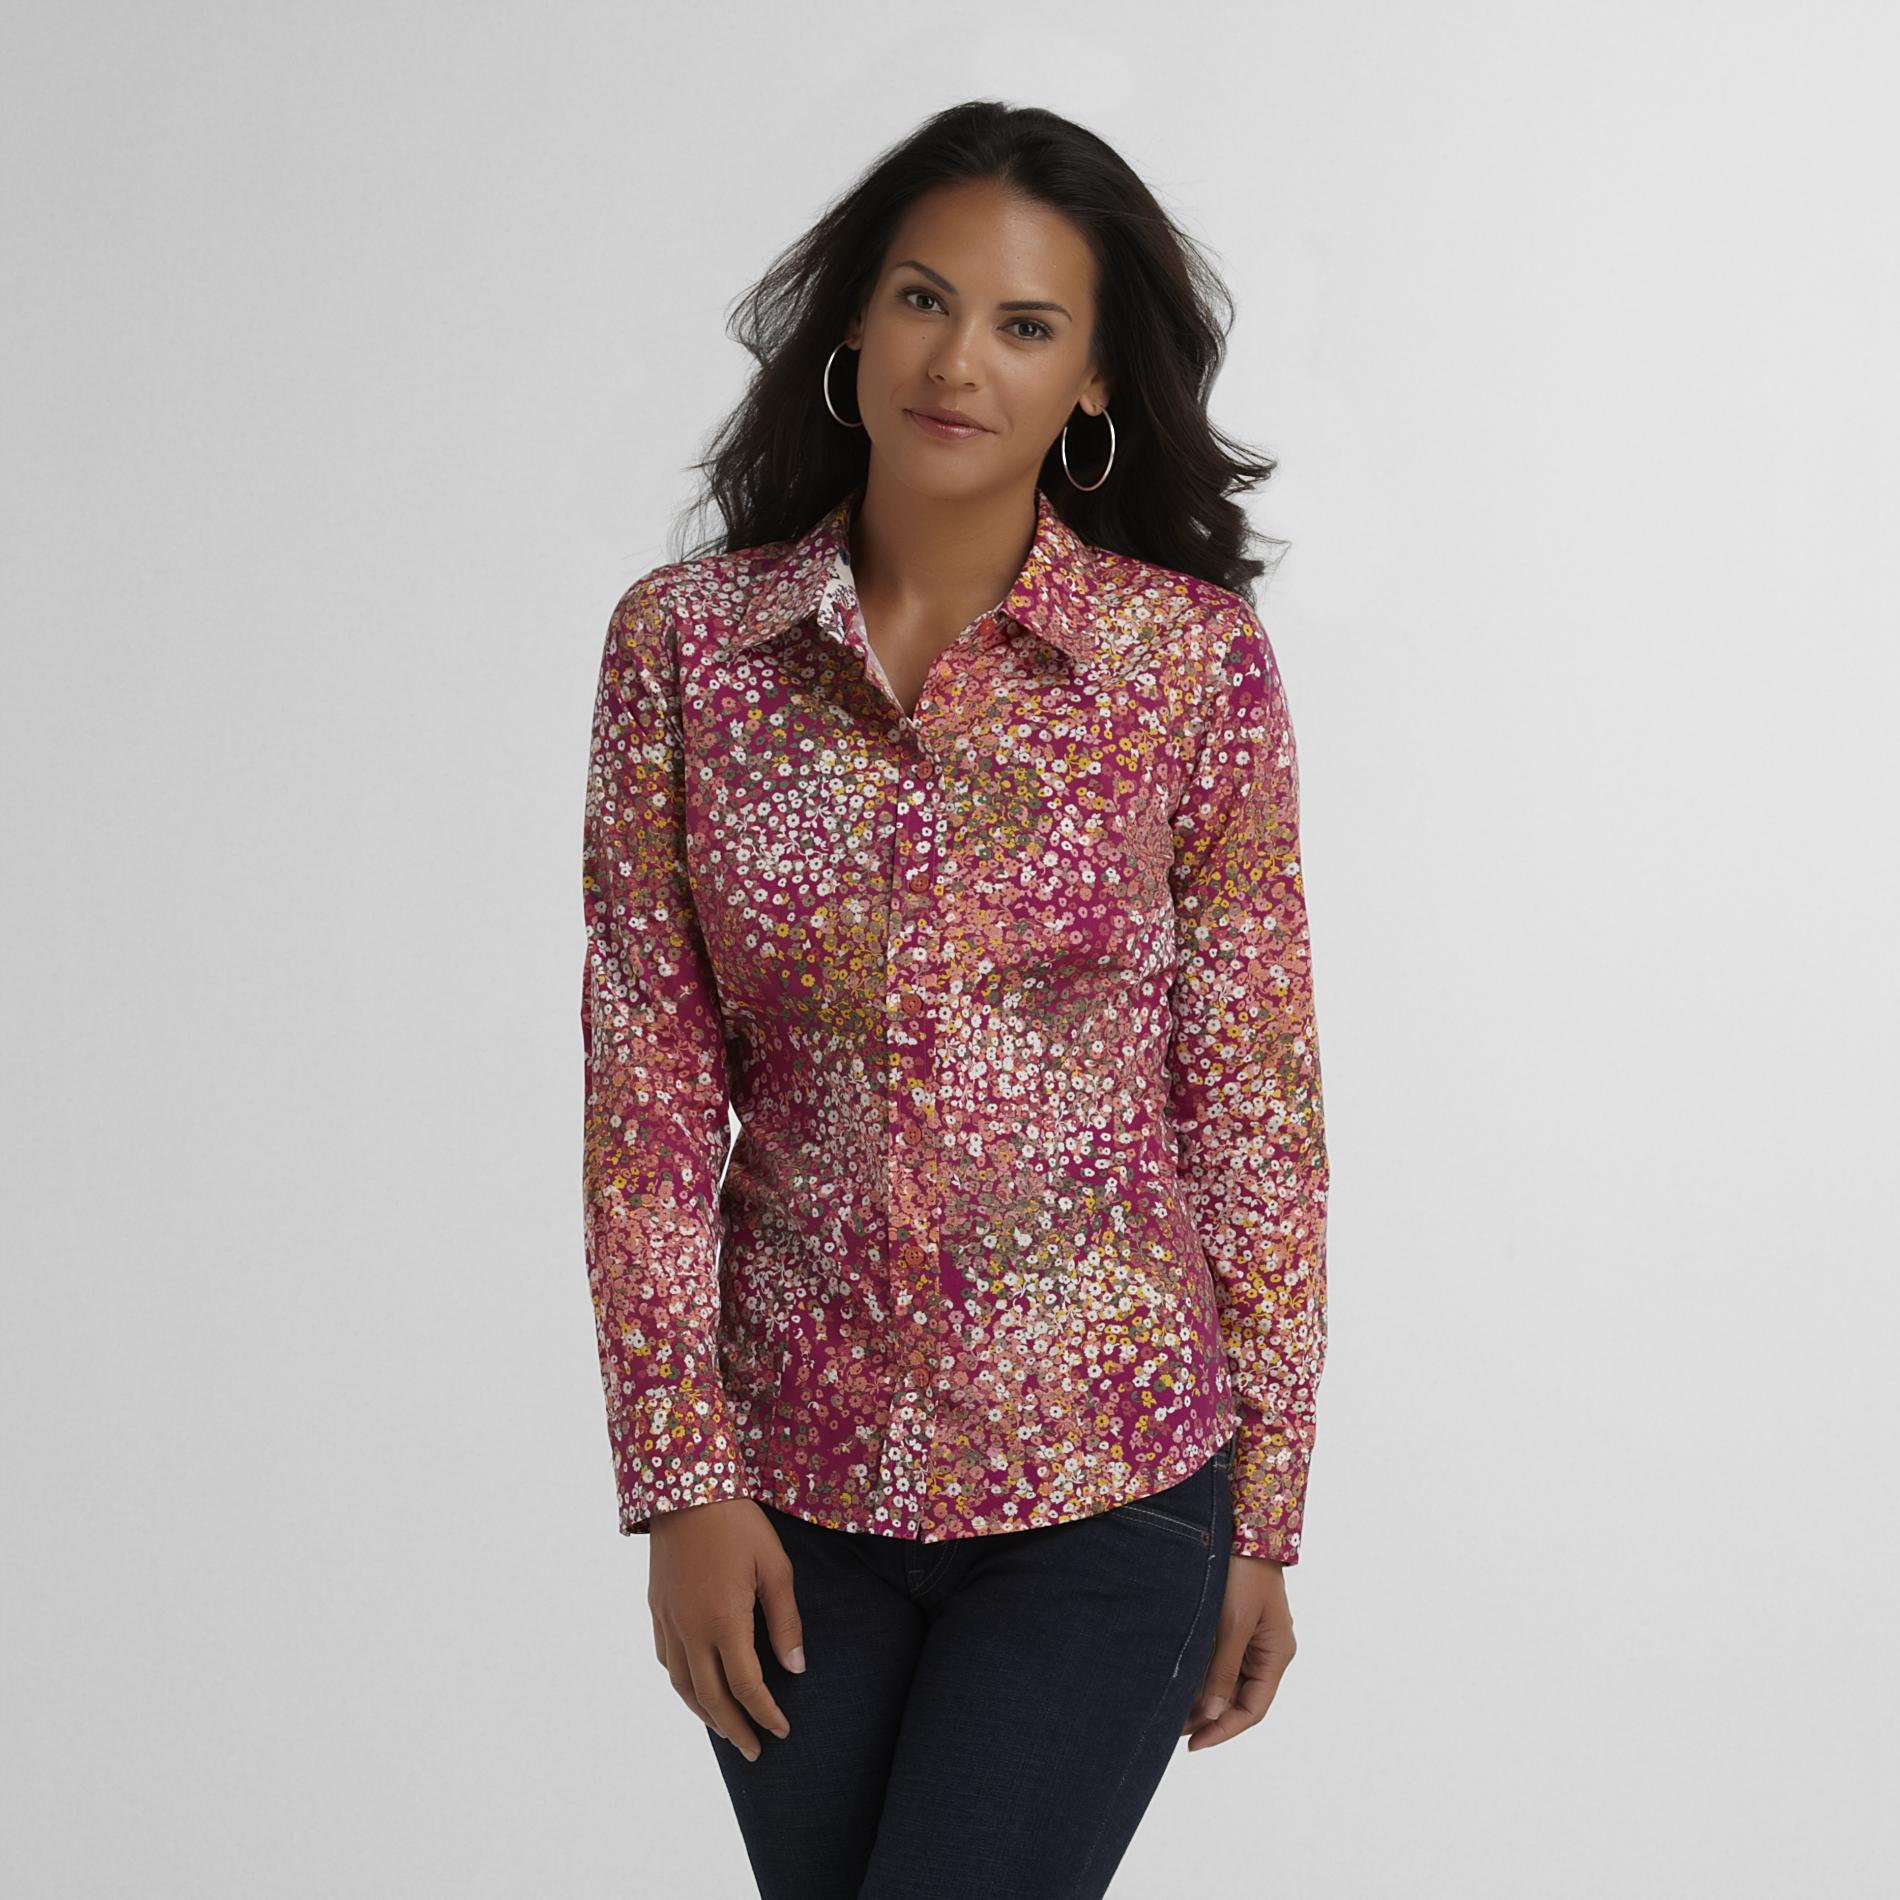 Basic Editions Women's Printed Woven Shirt - Floral at Kmart.com